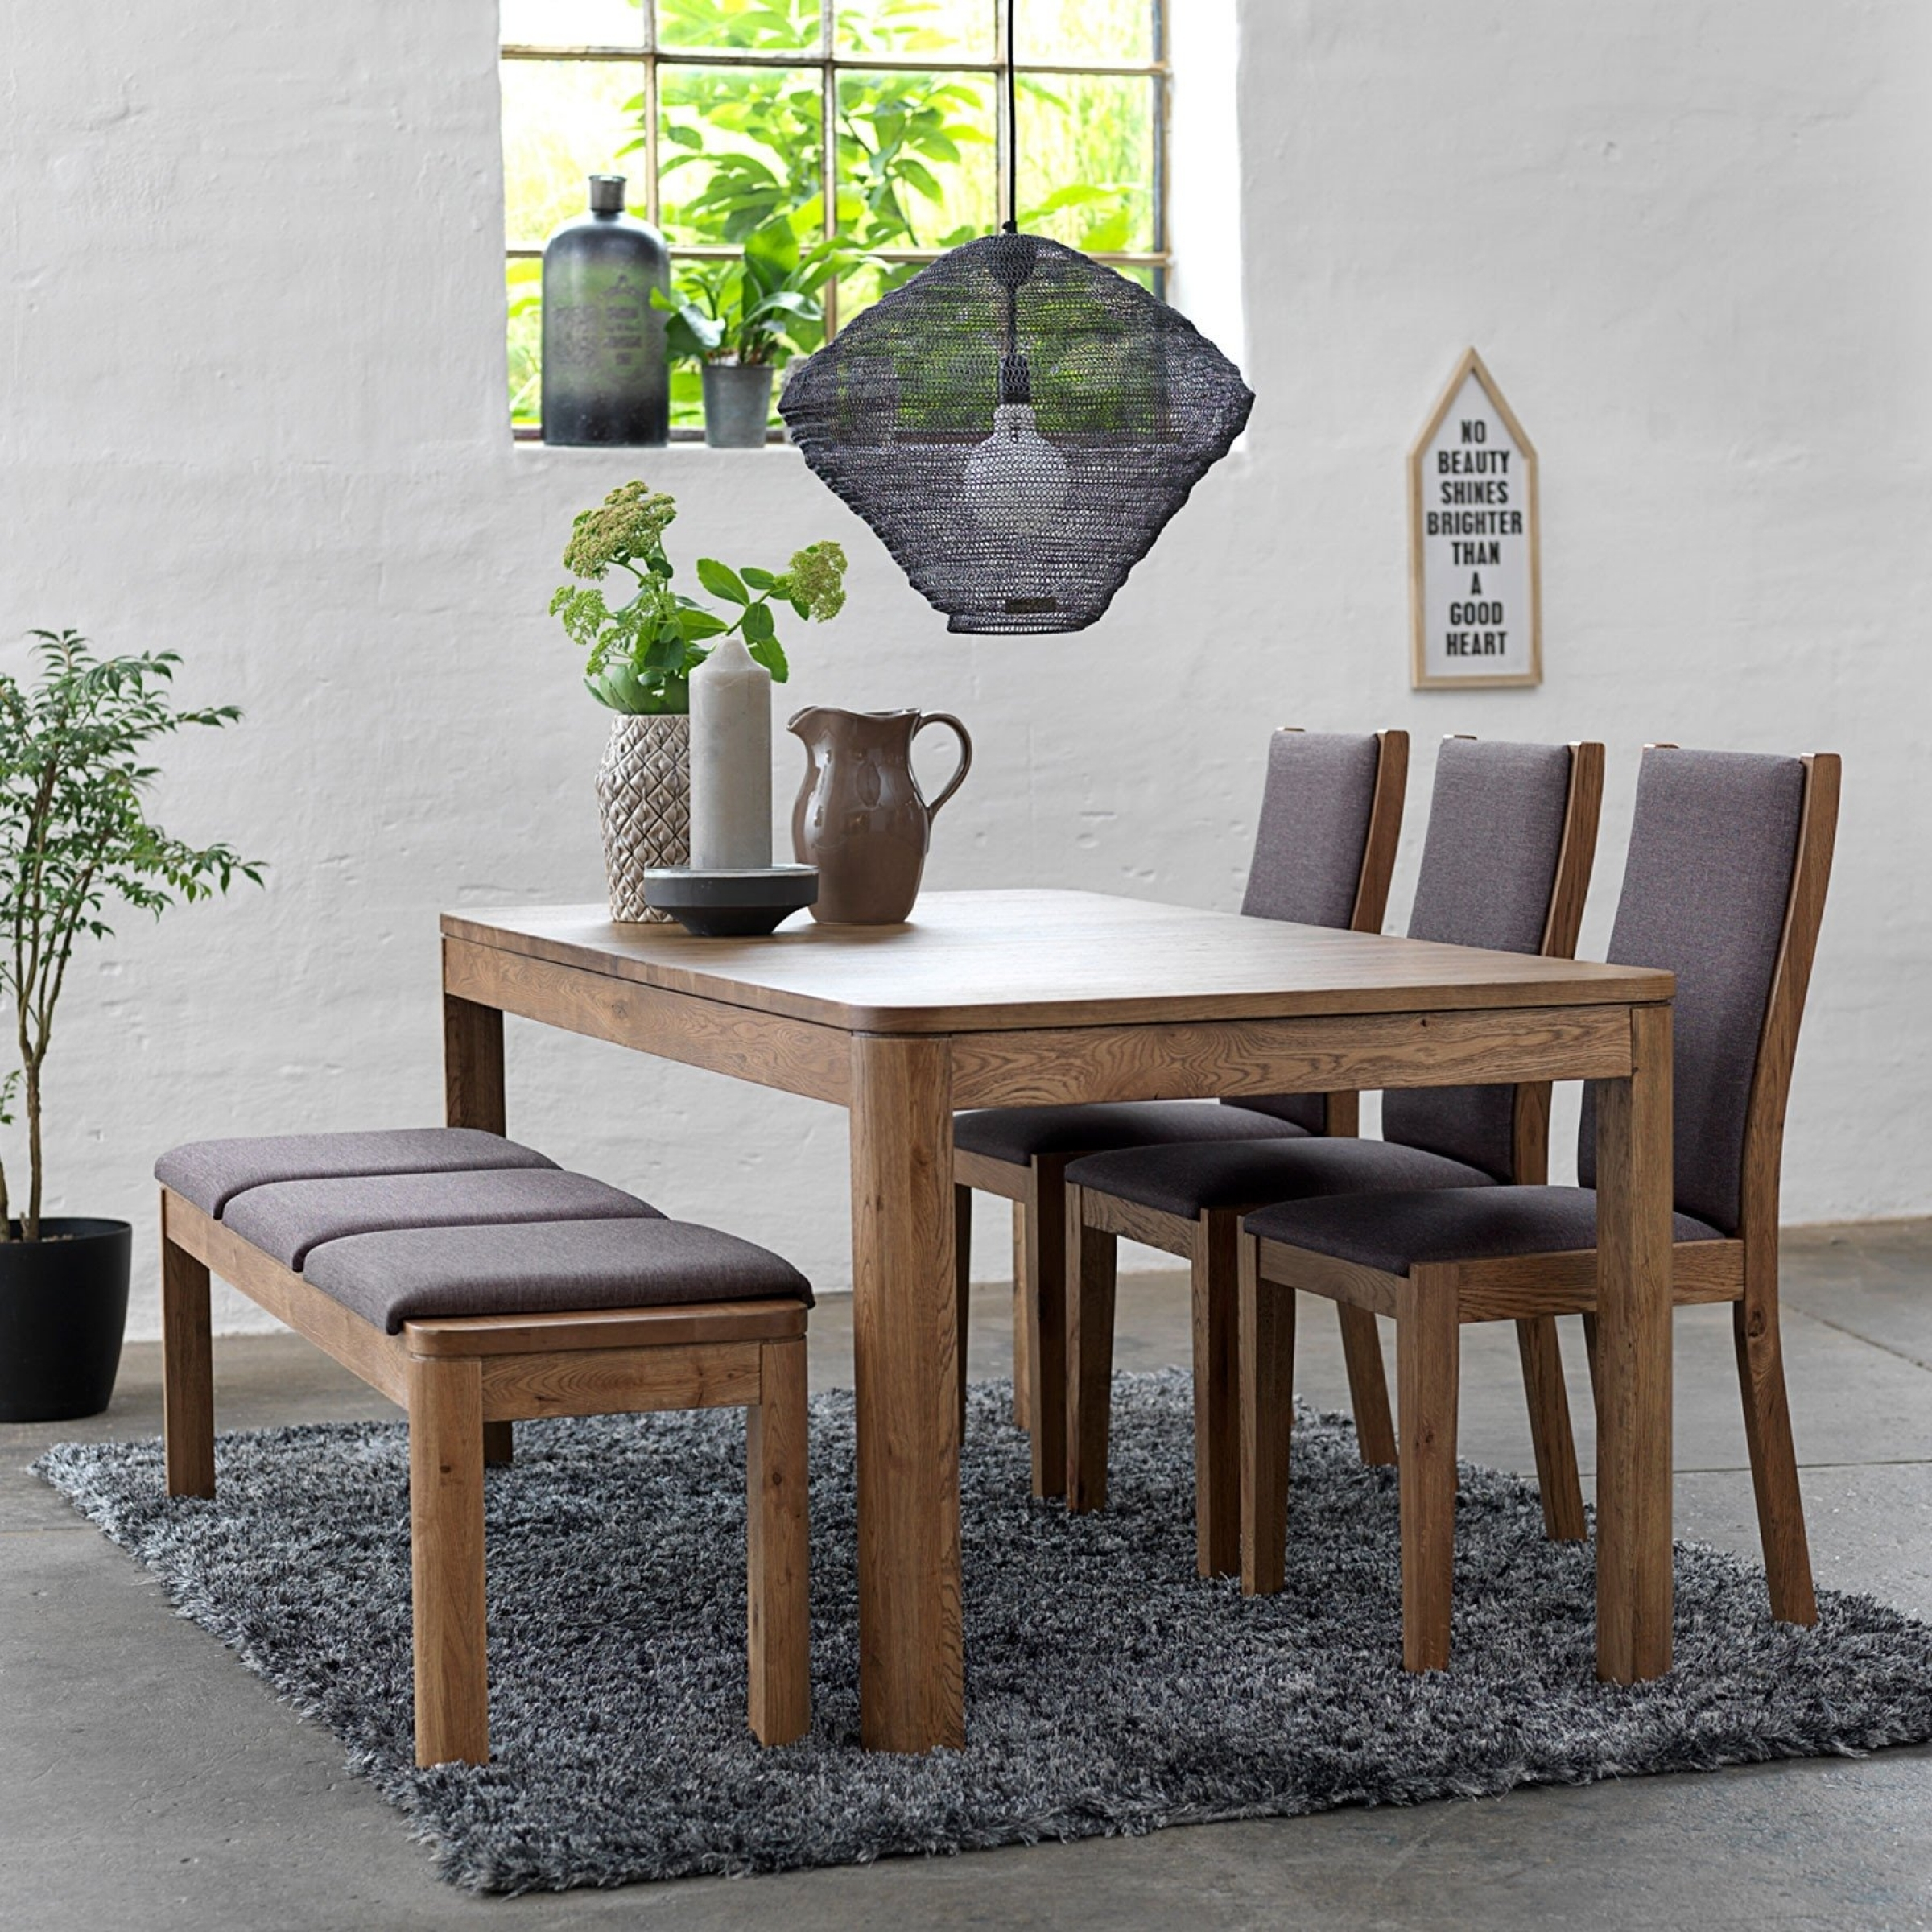 Dining Table With Bench And Chairs Were Comfortable: Dining Table With Bench